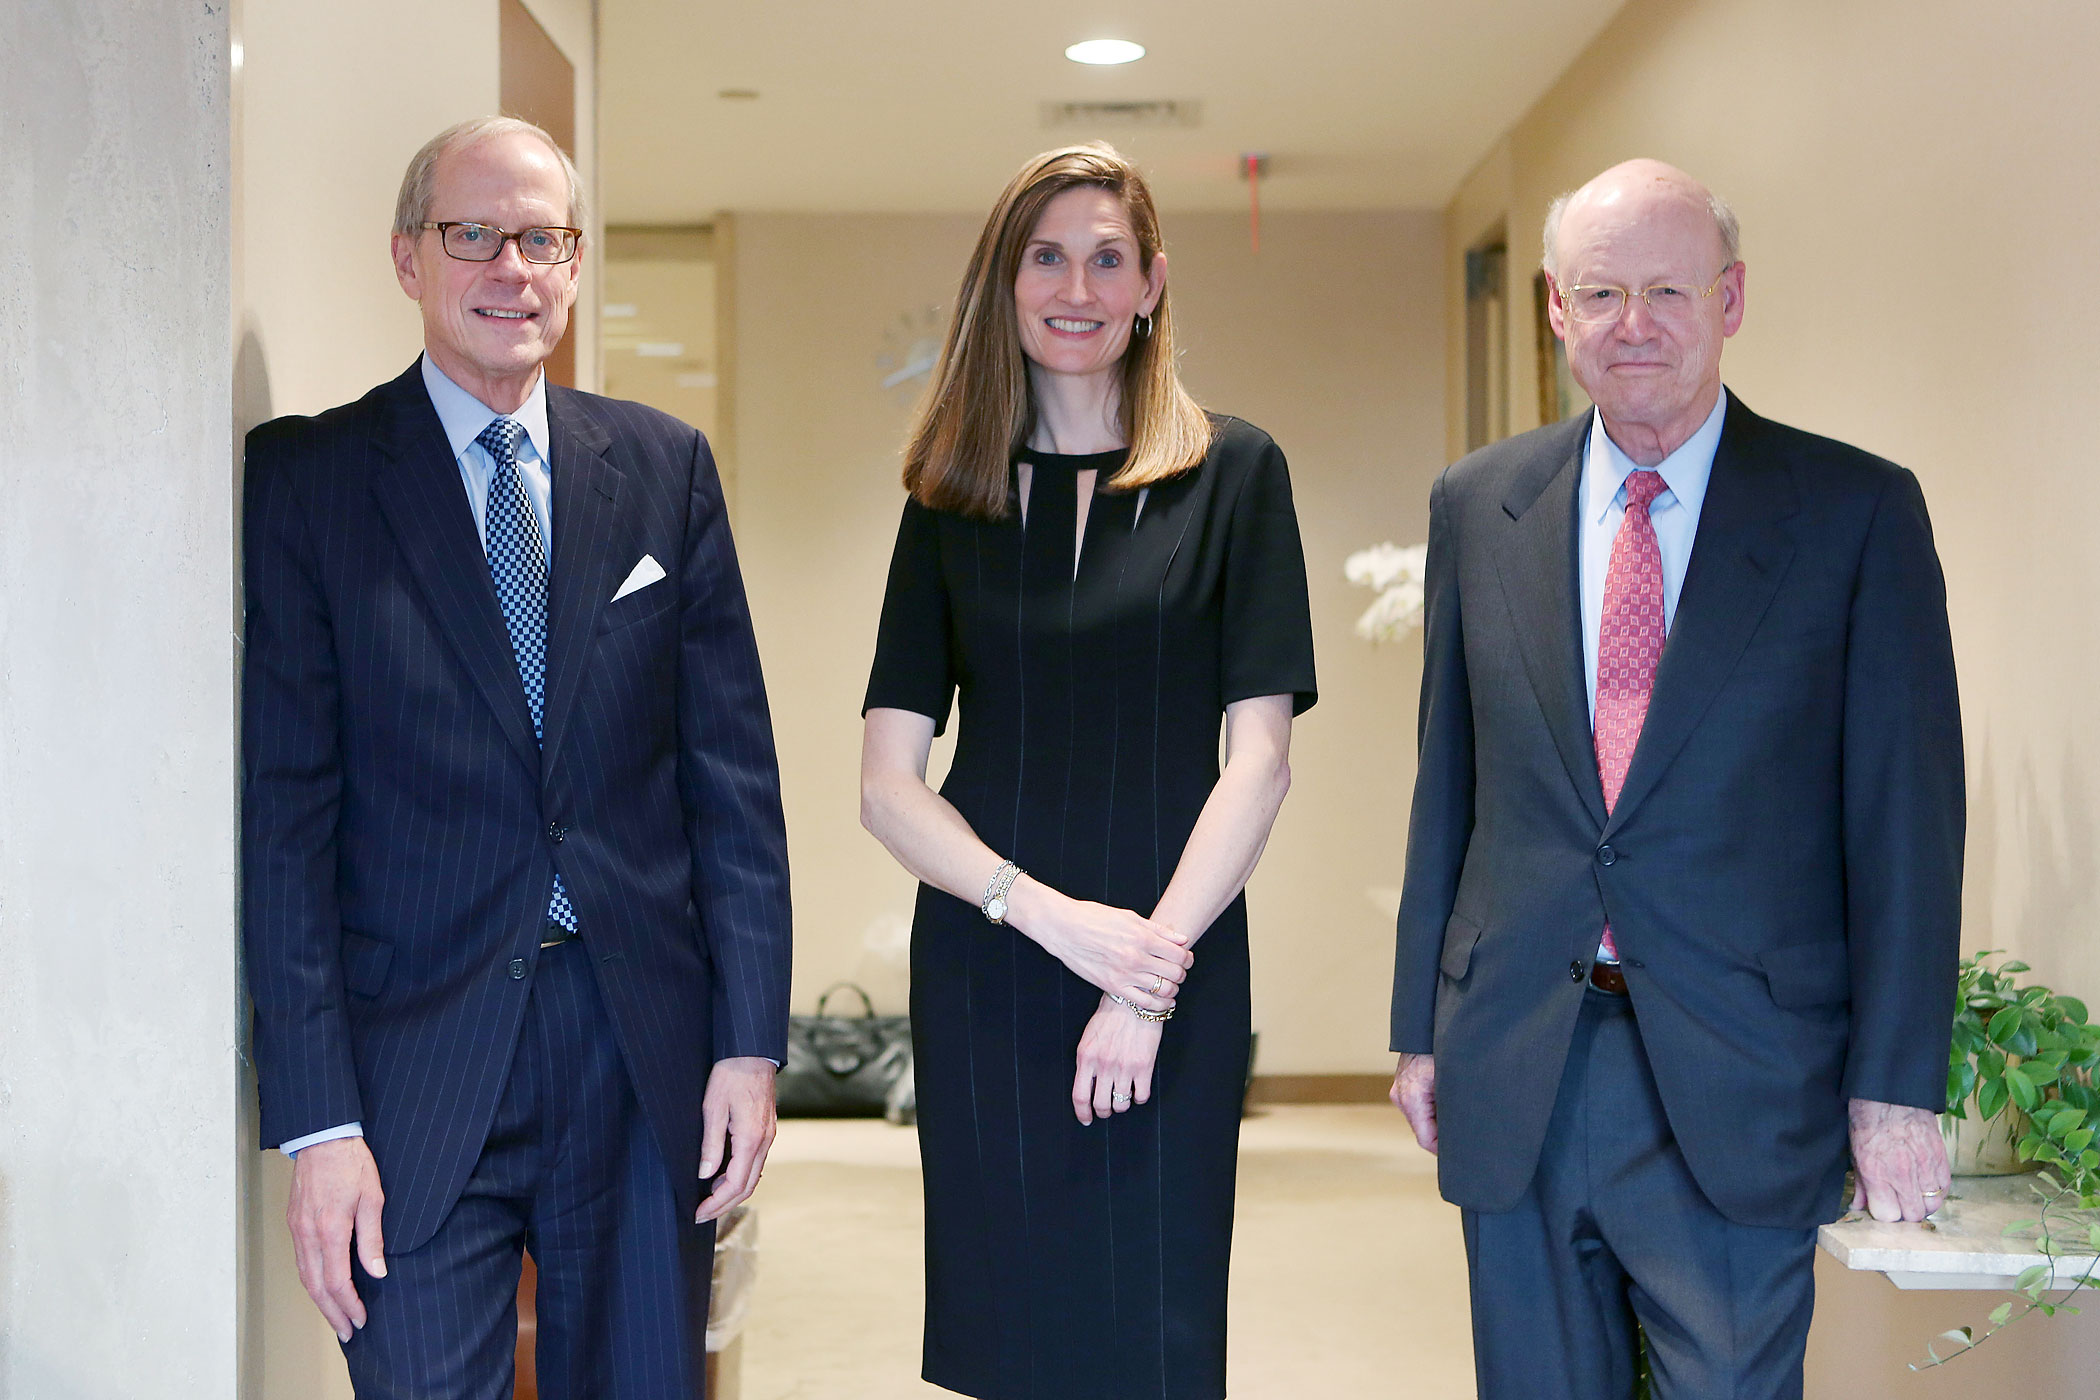 From left: Stephen Heintz, President of the Rockefeller Brothers Fund, Valerie Rockefeller Wayne, the chair of the fund, and Steven Rockefeller, a son of Nelson Rockefeller and a trustee of the fund, in New York, Sept. 16, 2014.